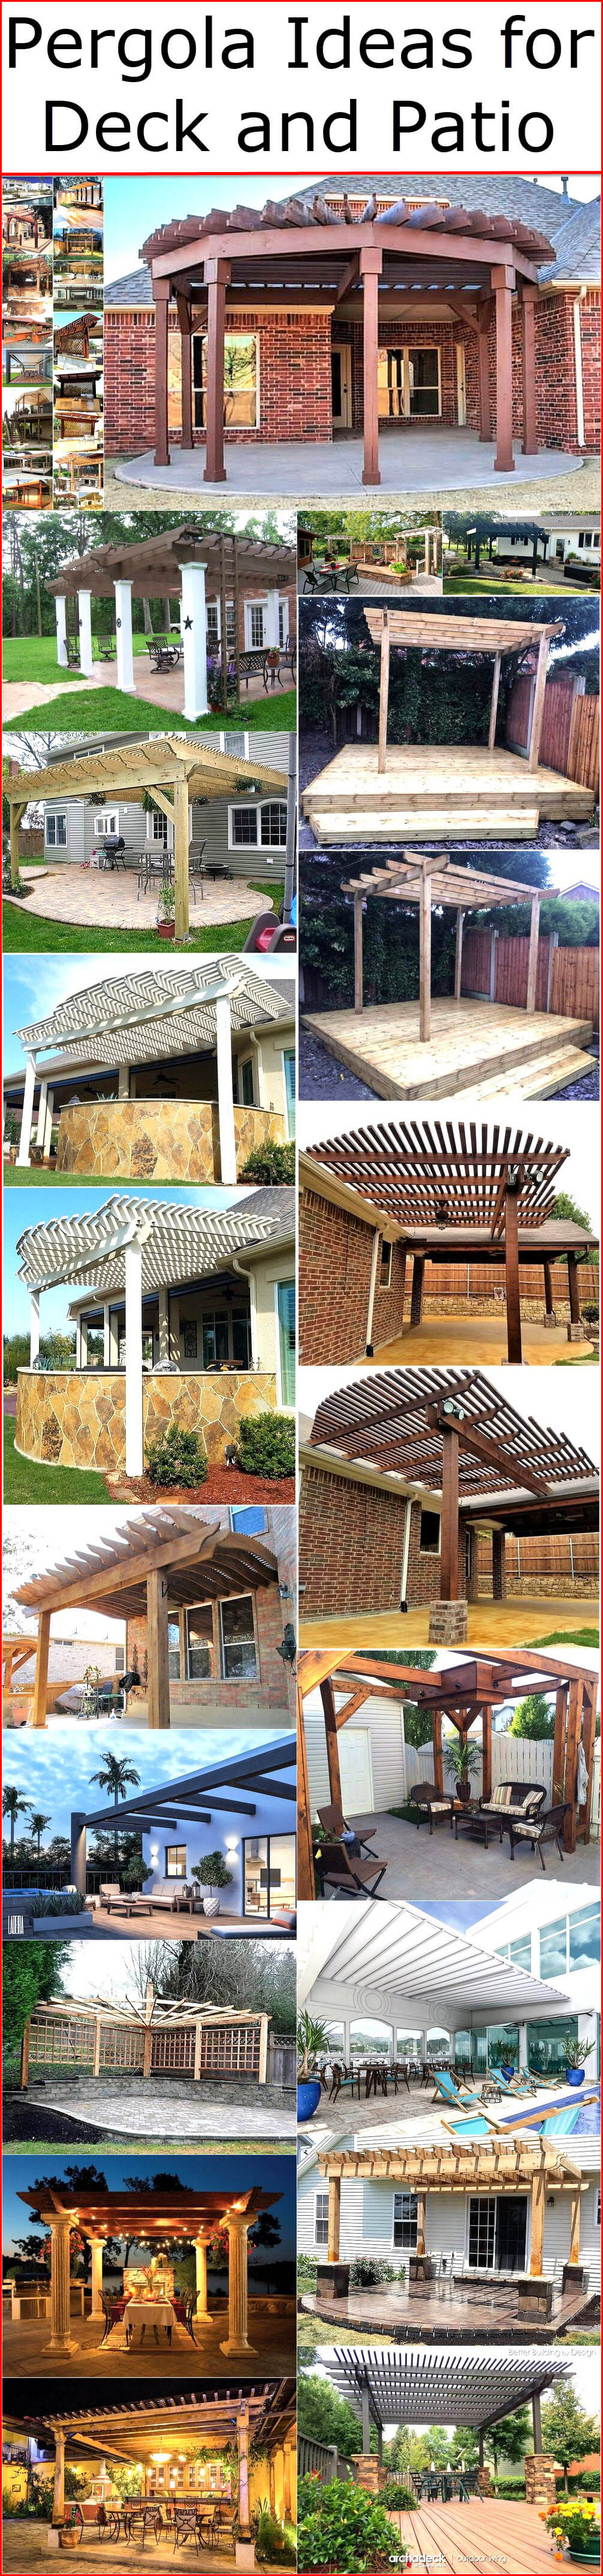 Pergola Ideas for Deck and Patio